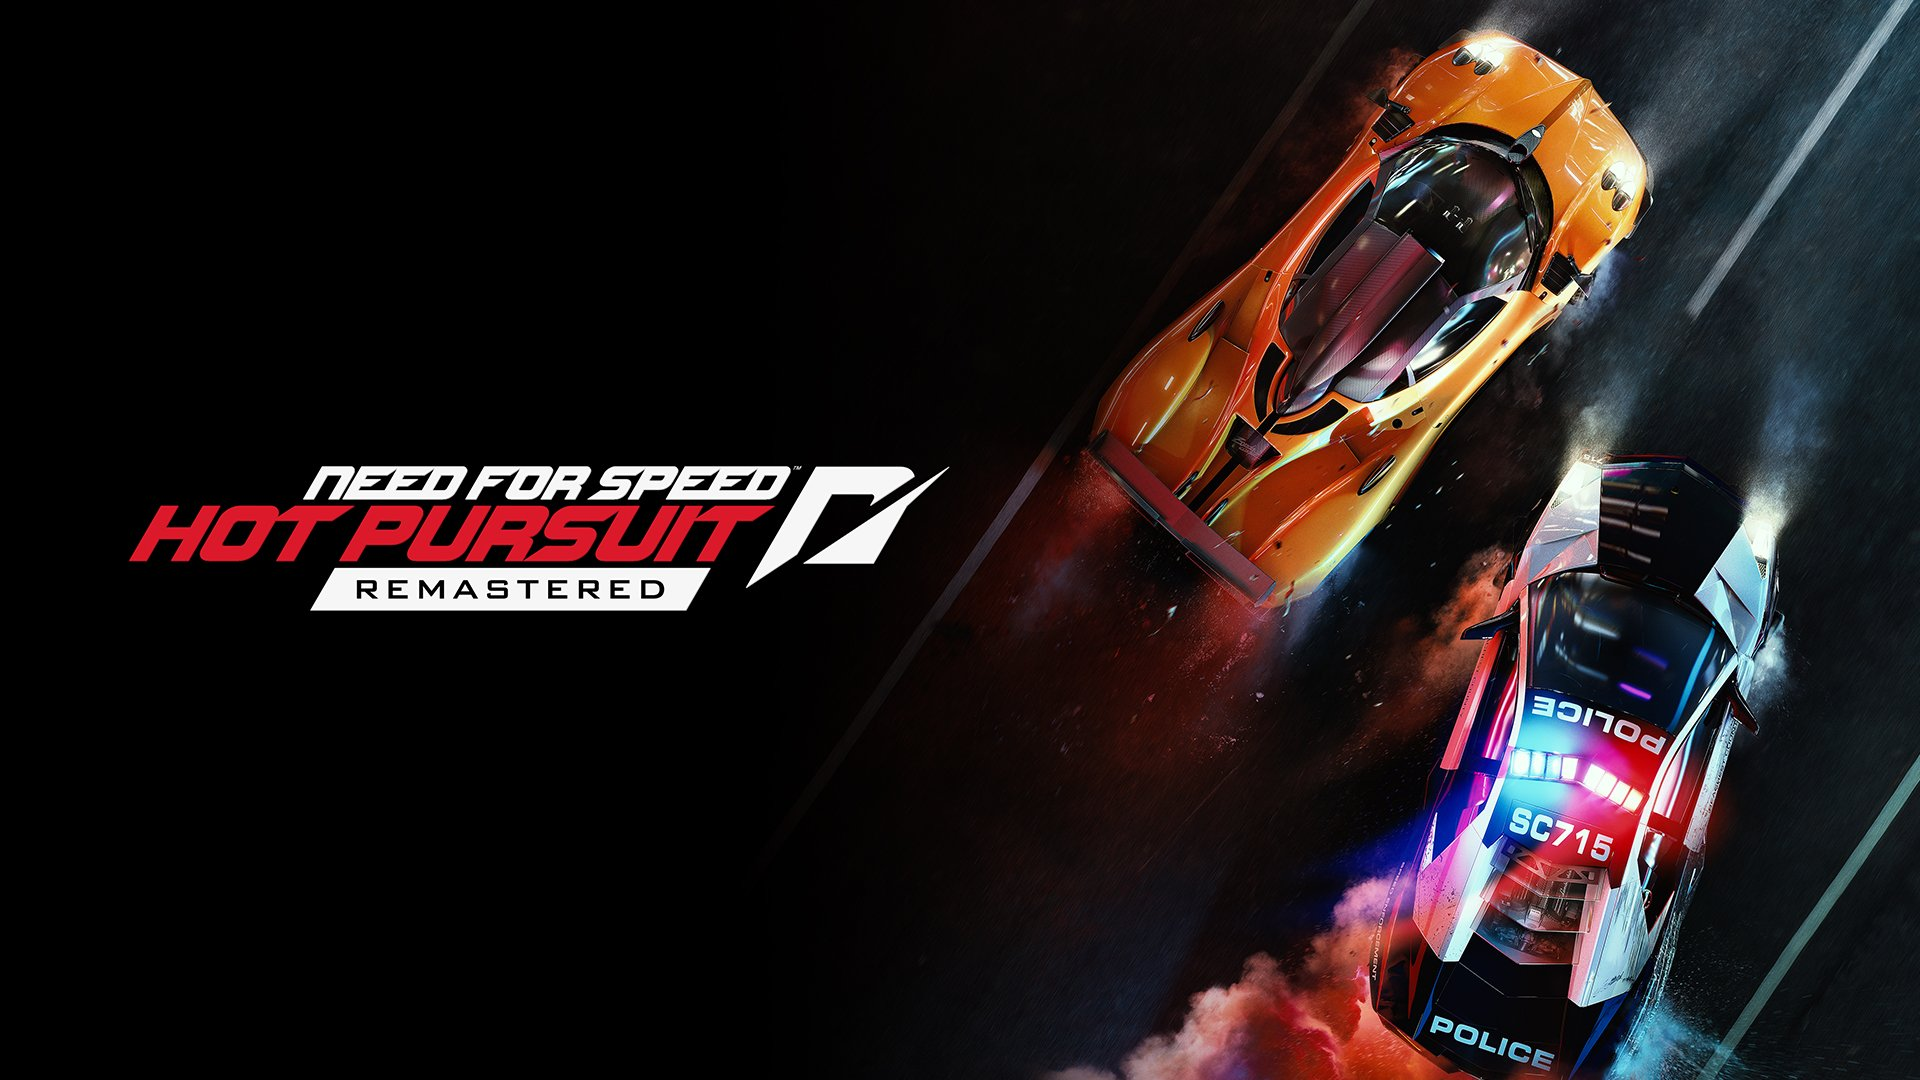 need-for-speed-hot-pursuit-remastered-switch-hero